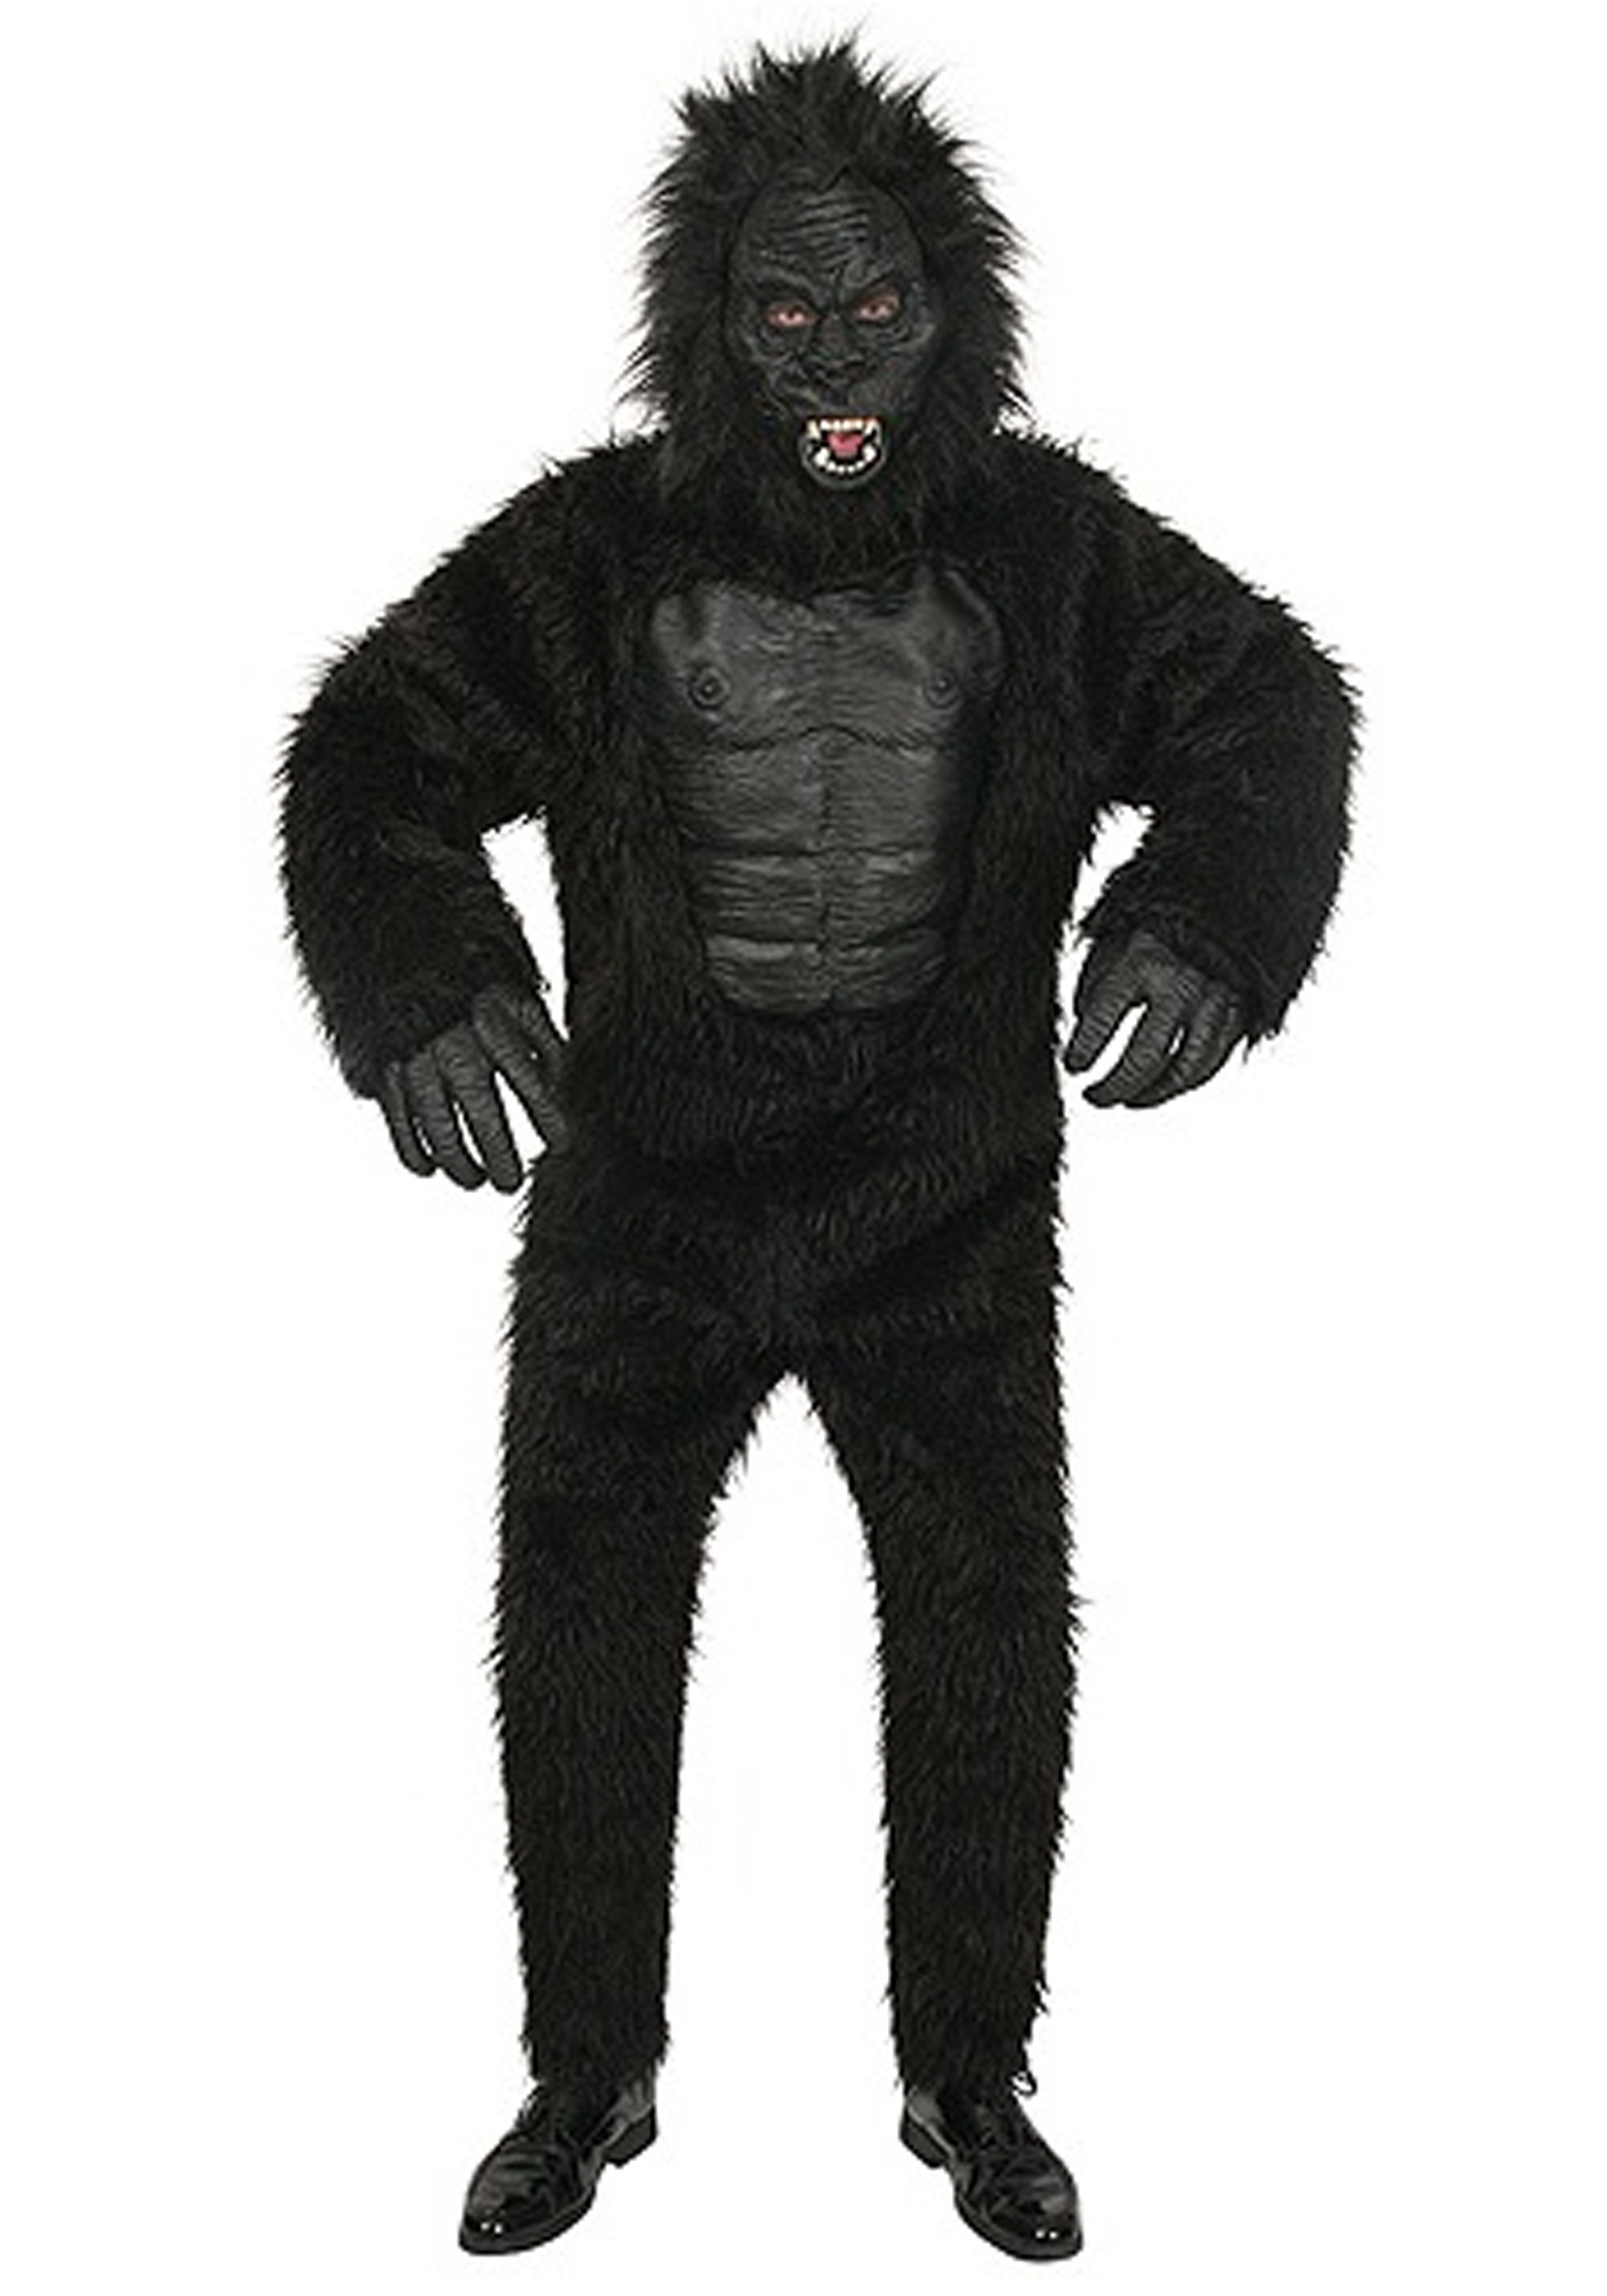 Uncategorized How To Make A Gorilla Costume teen gorilla costume